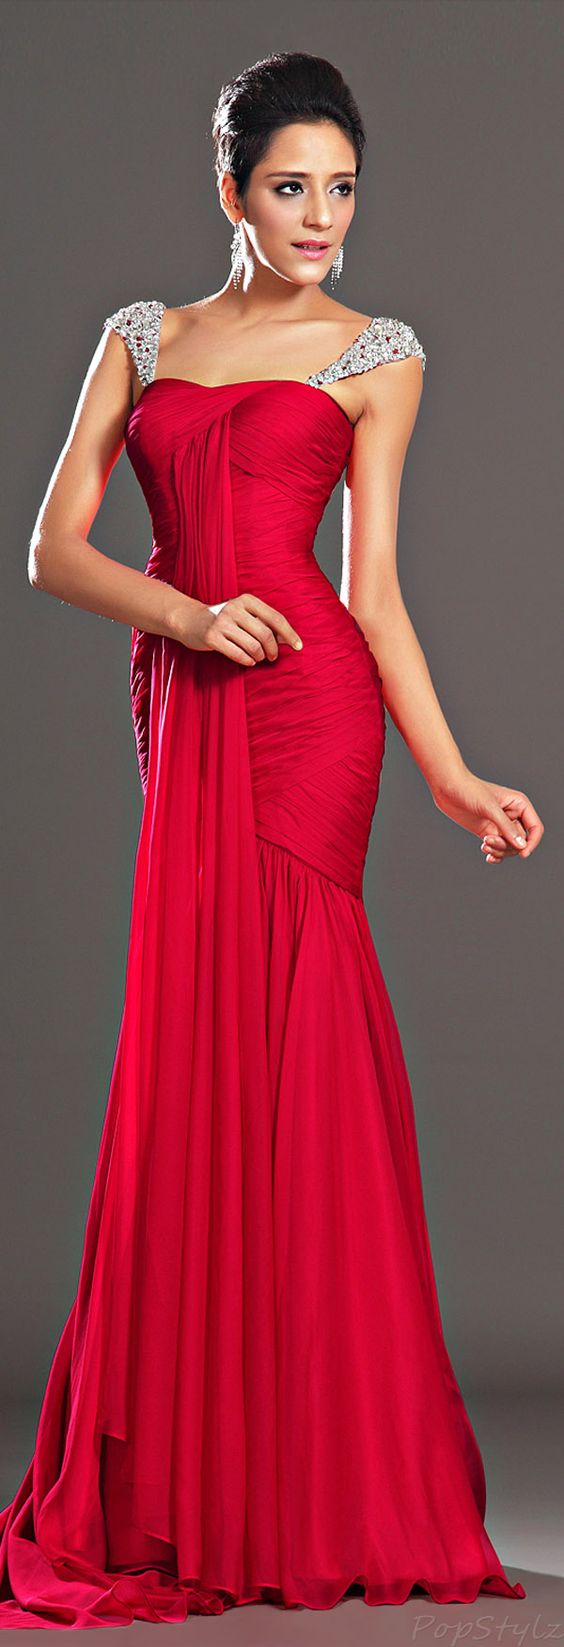 Stunning Red Evening Dress... Perfect for the USMC Birthday Ball ...